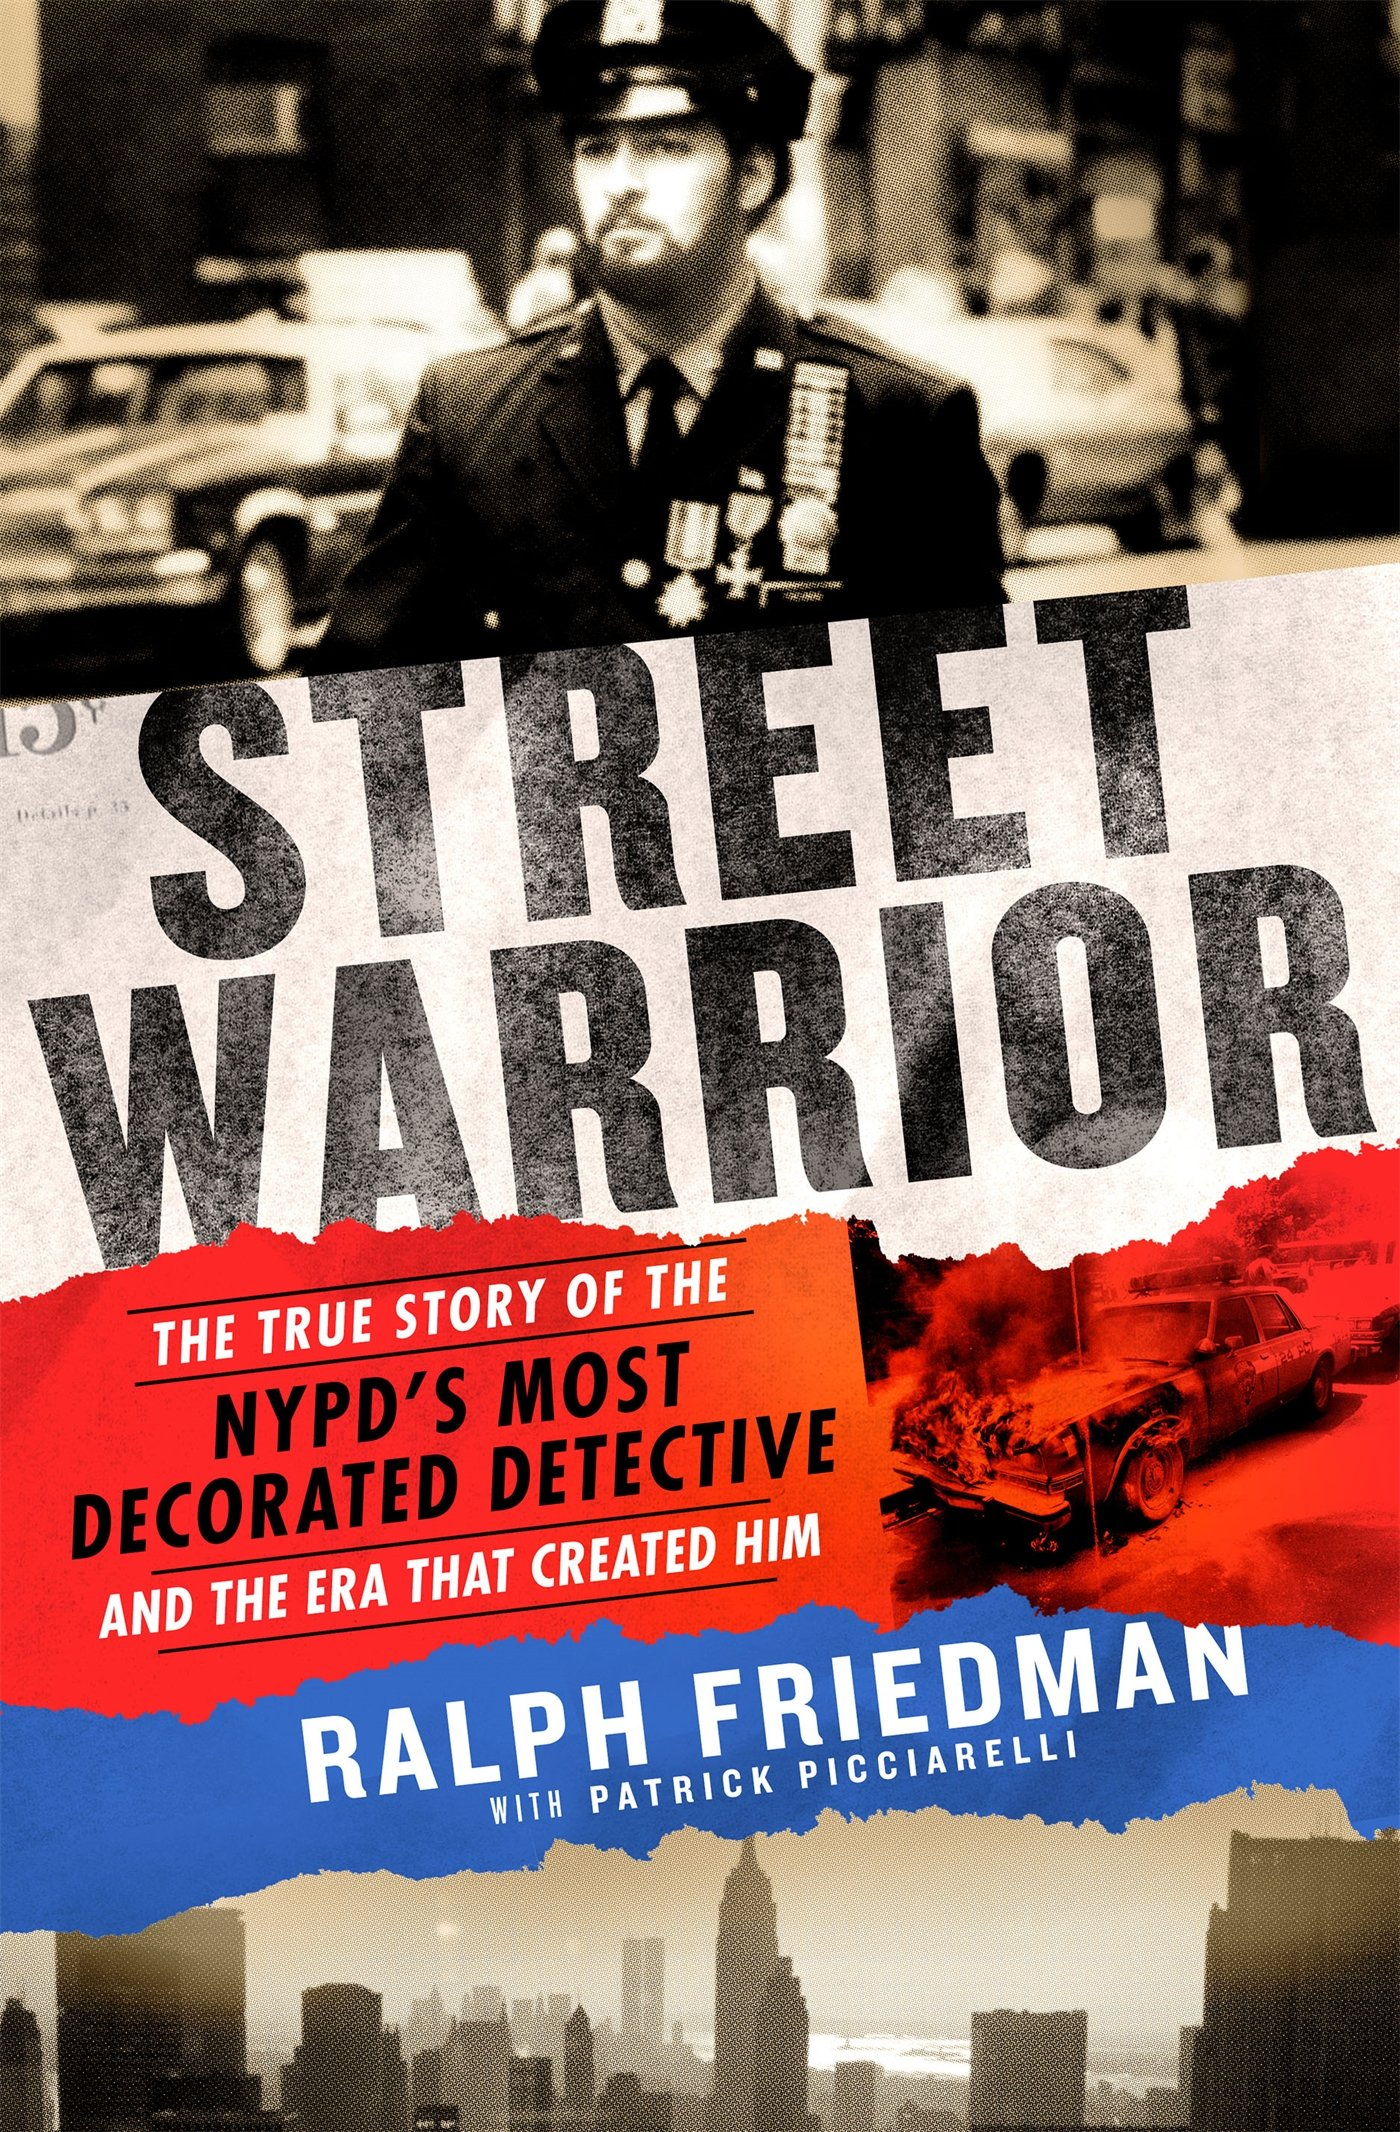 Street Warrior: The True Story of the NYPD's Most Decorated Detective and the Era That Created Him